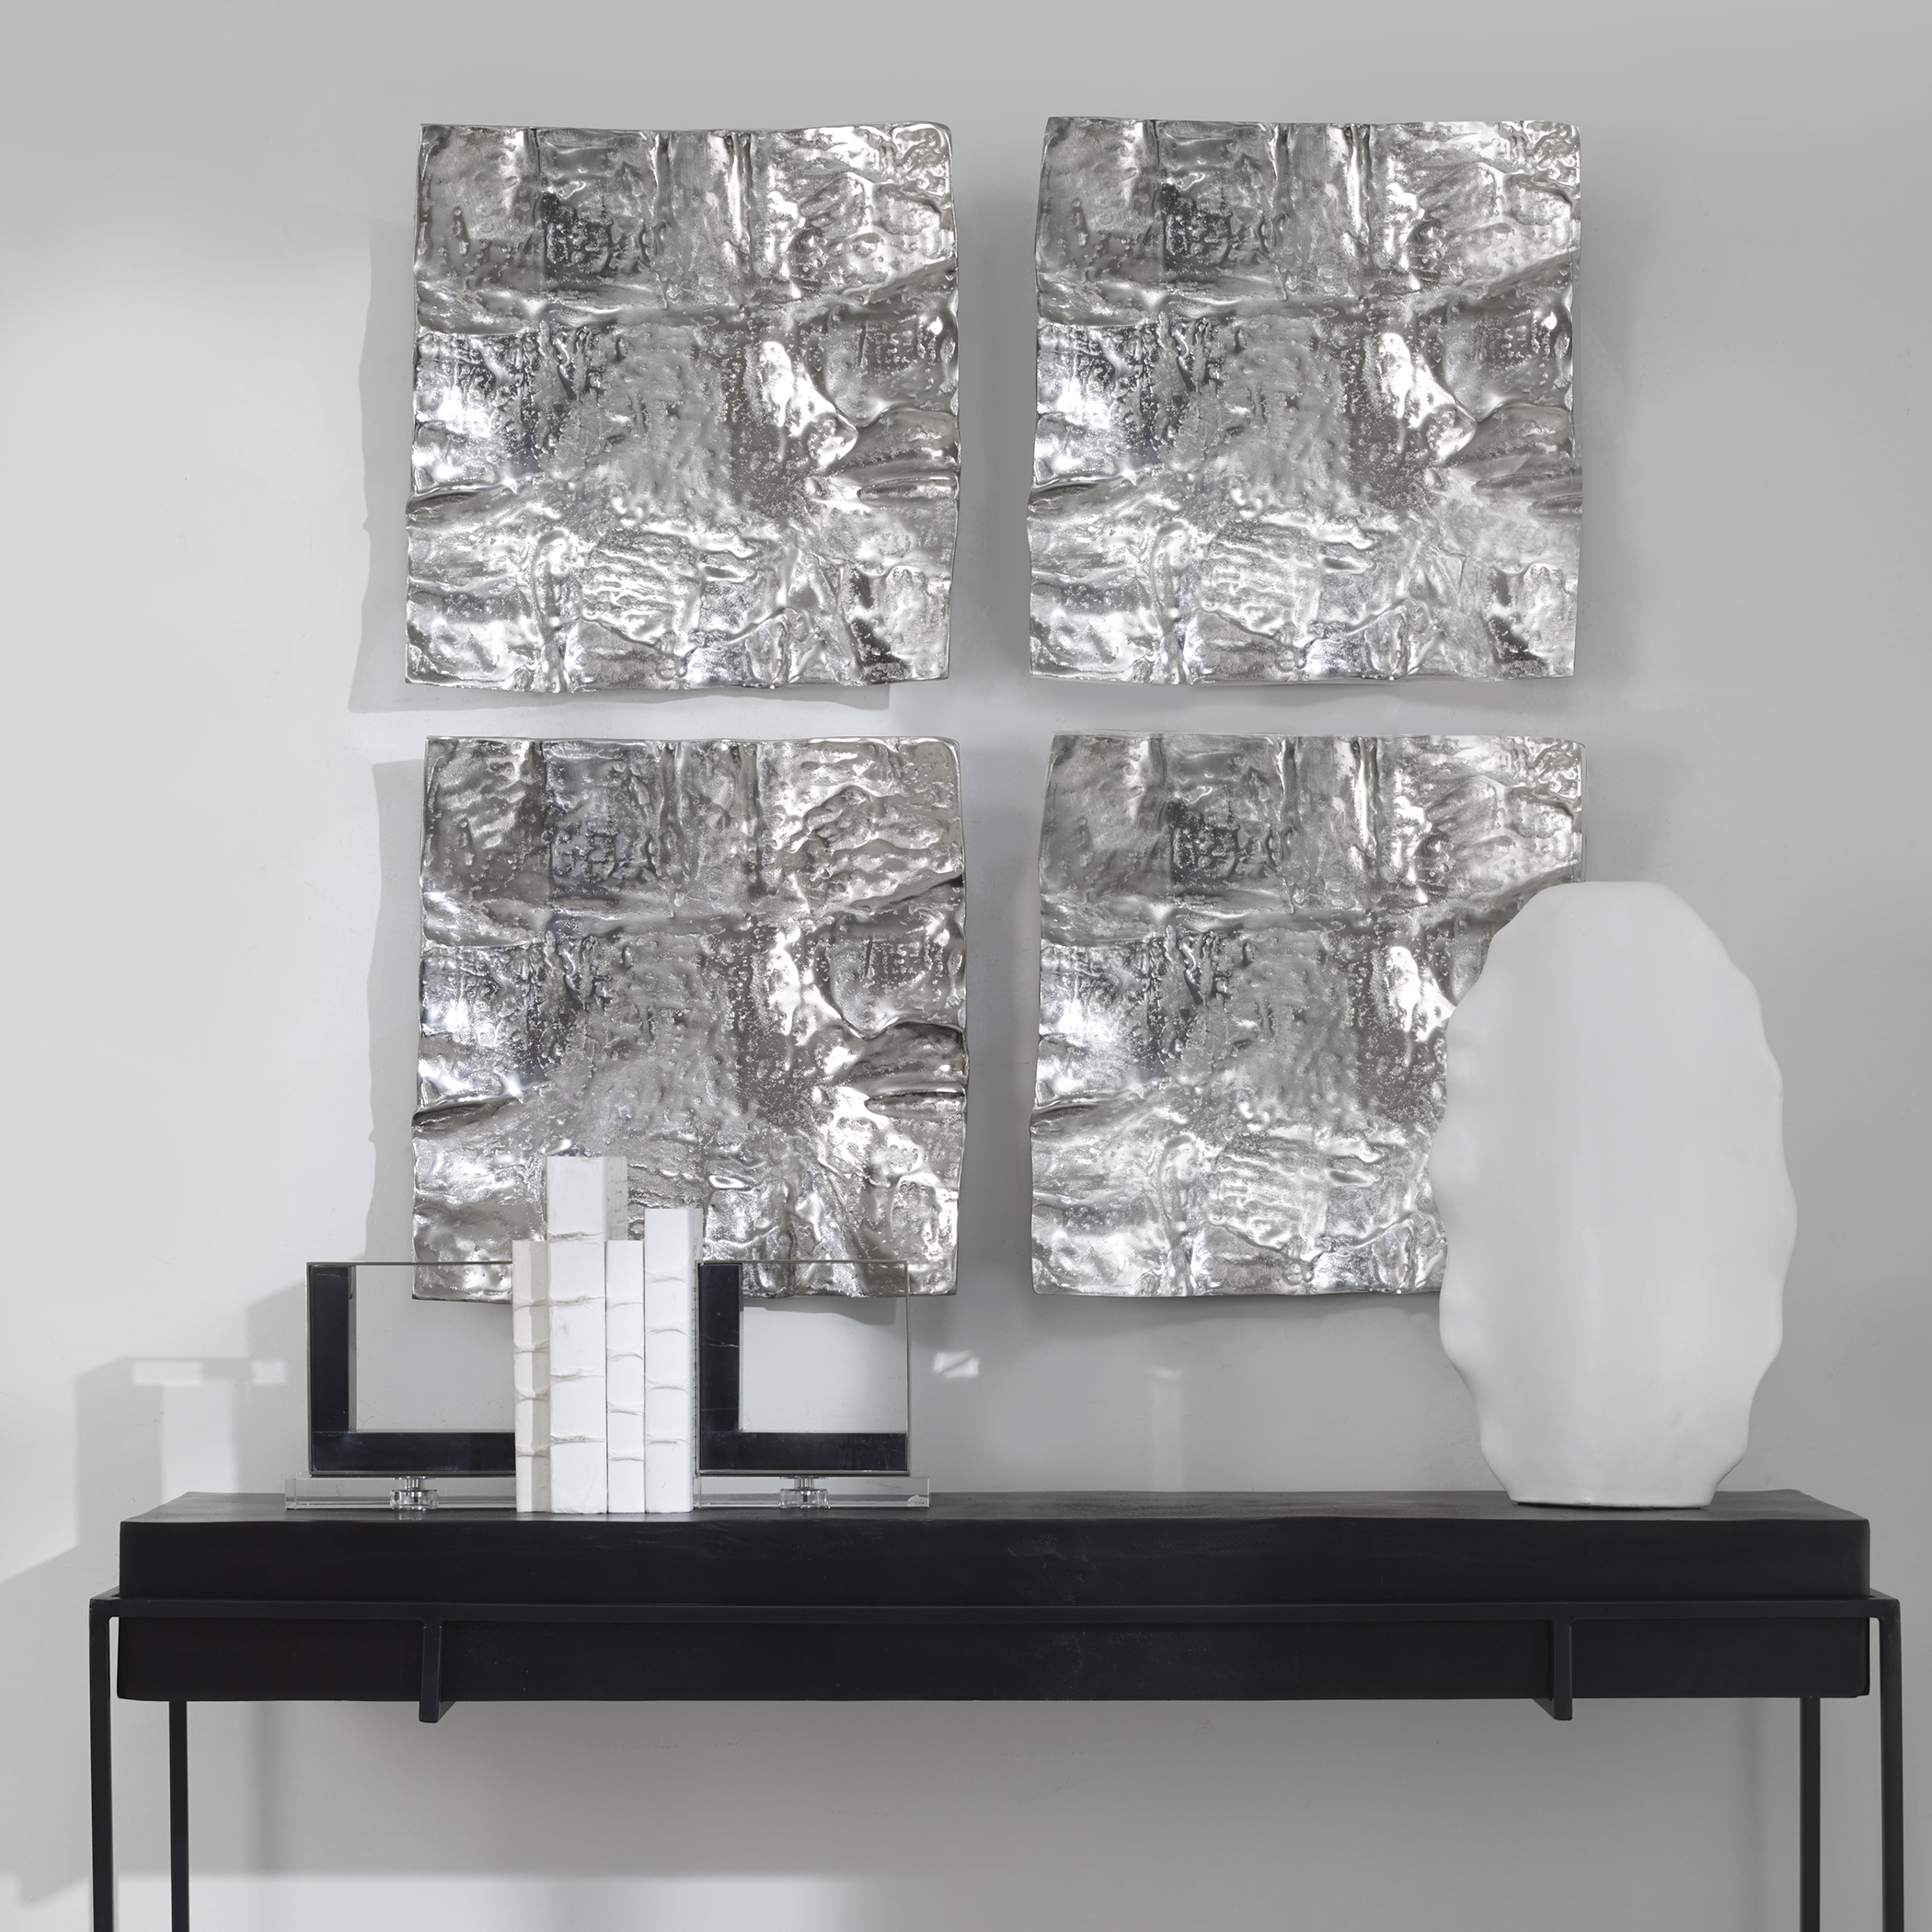 Uttermost Archive Nickel Wall Decor